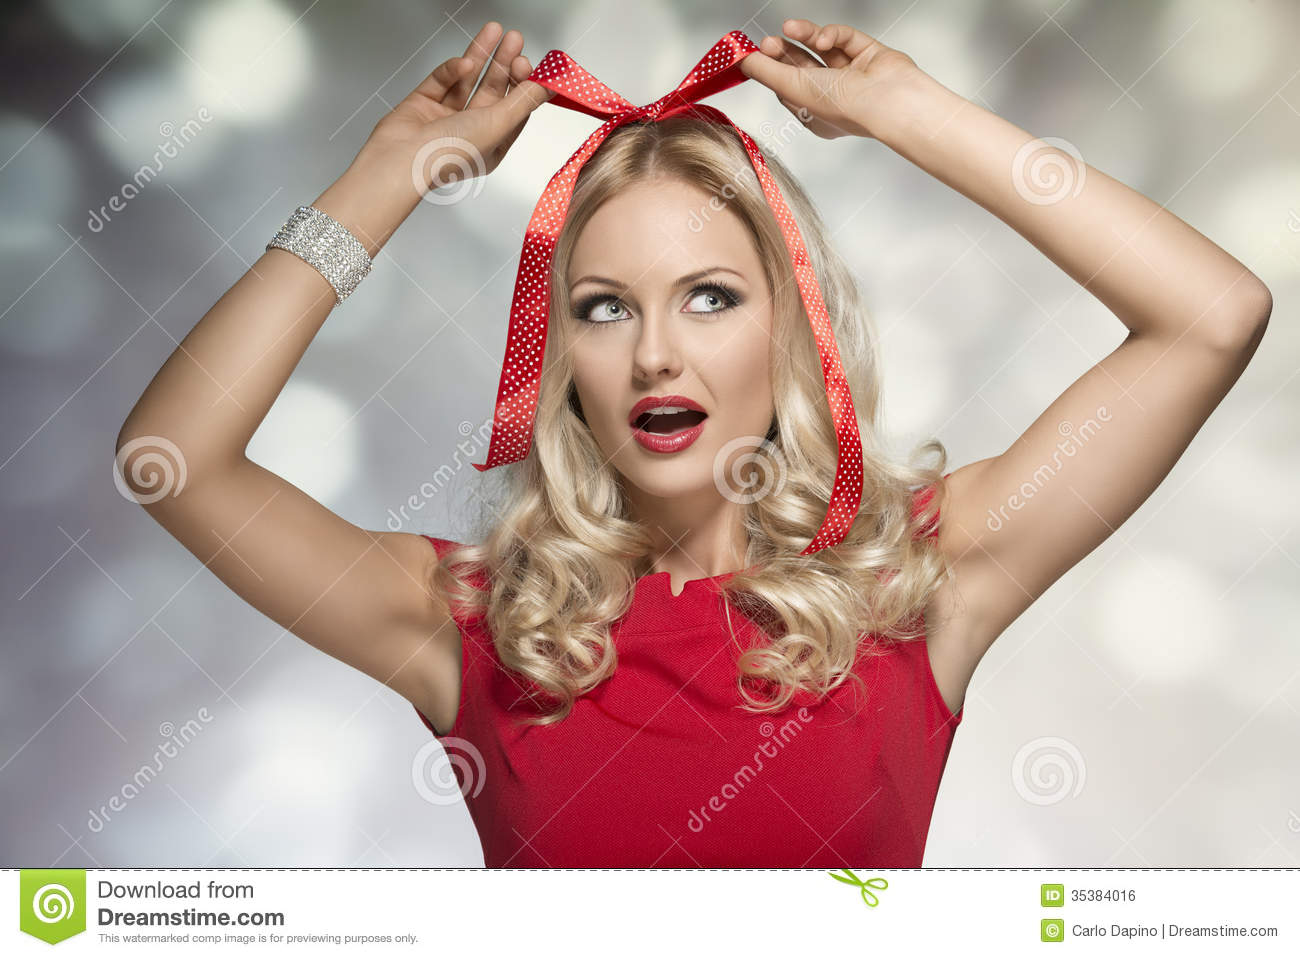 Woman adorned like a christmas present with bow on her head wearing